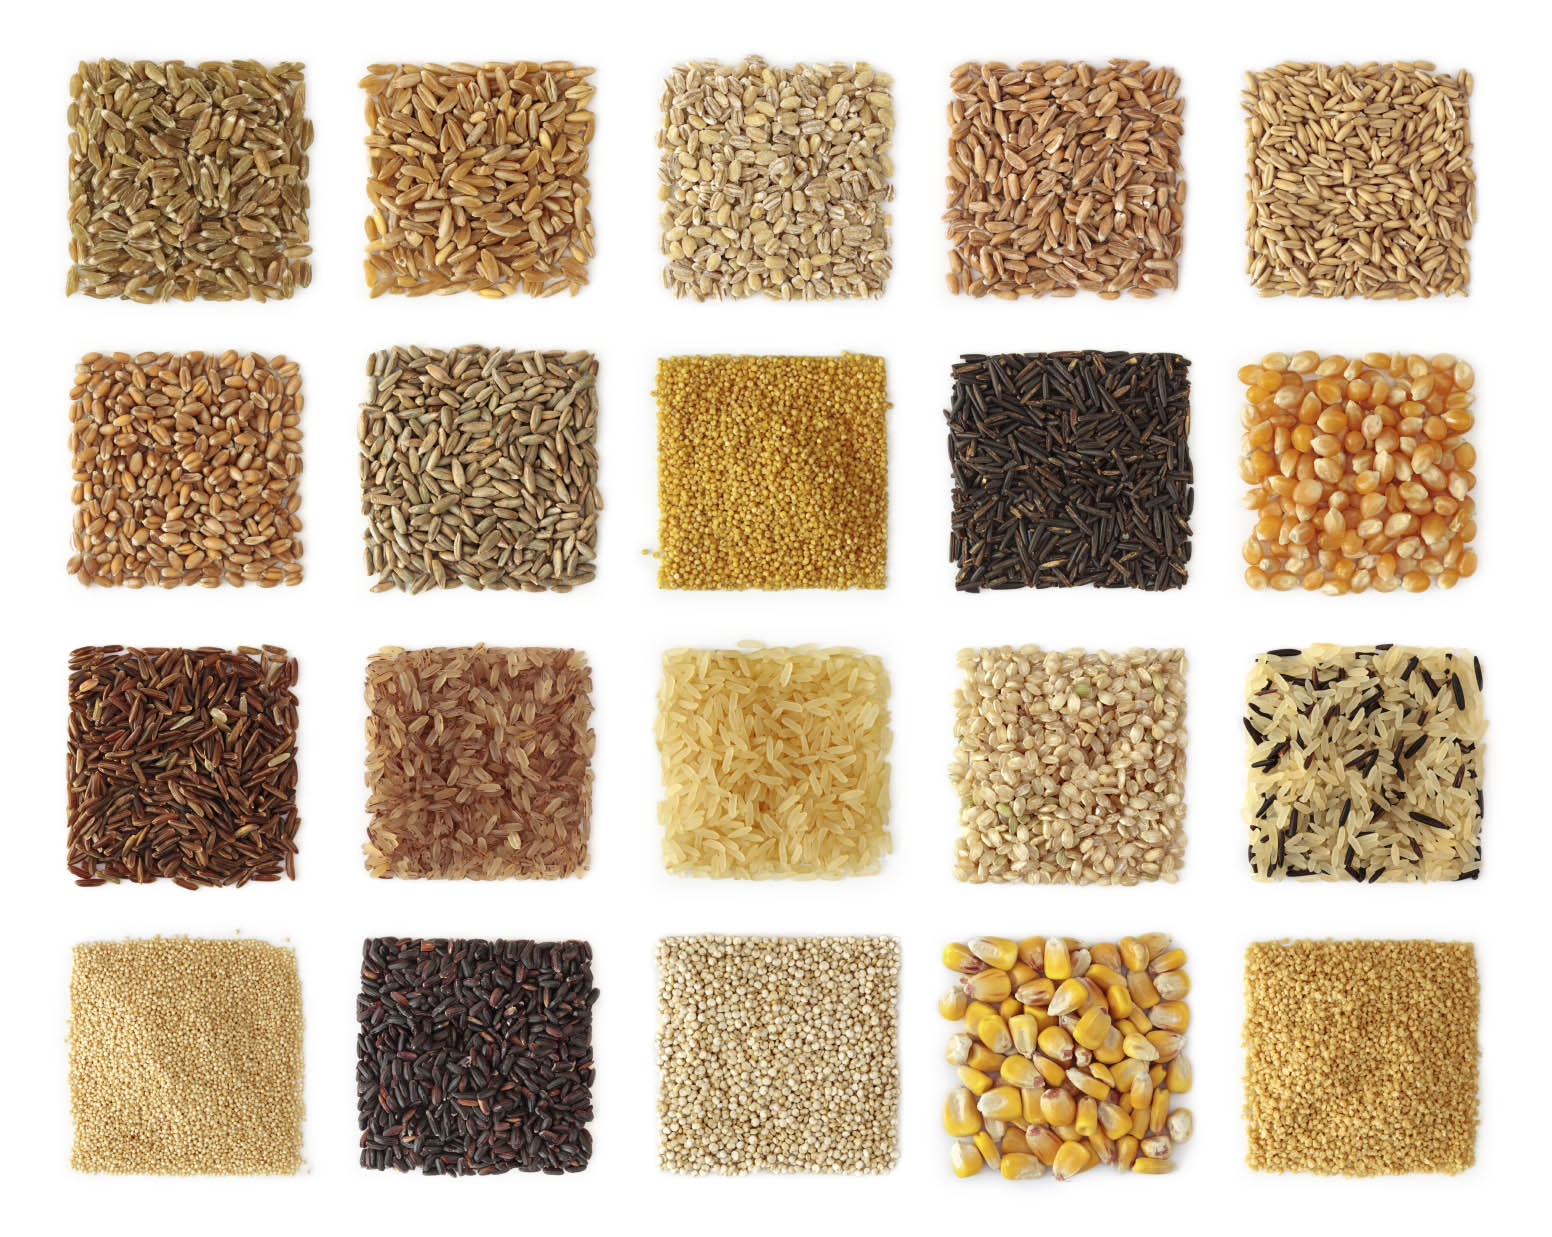 precision nutrition whole grains Settling the great grain debate. Can wheat and other grains fit into a healthy — and sane — diet?